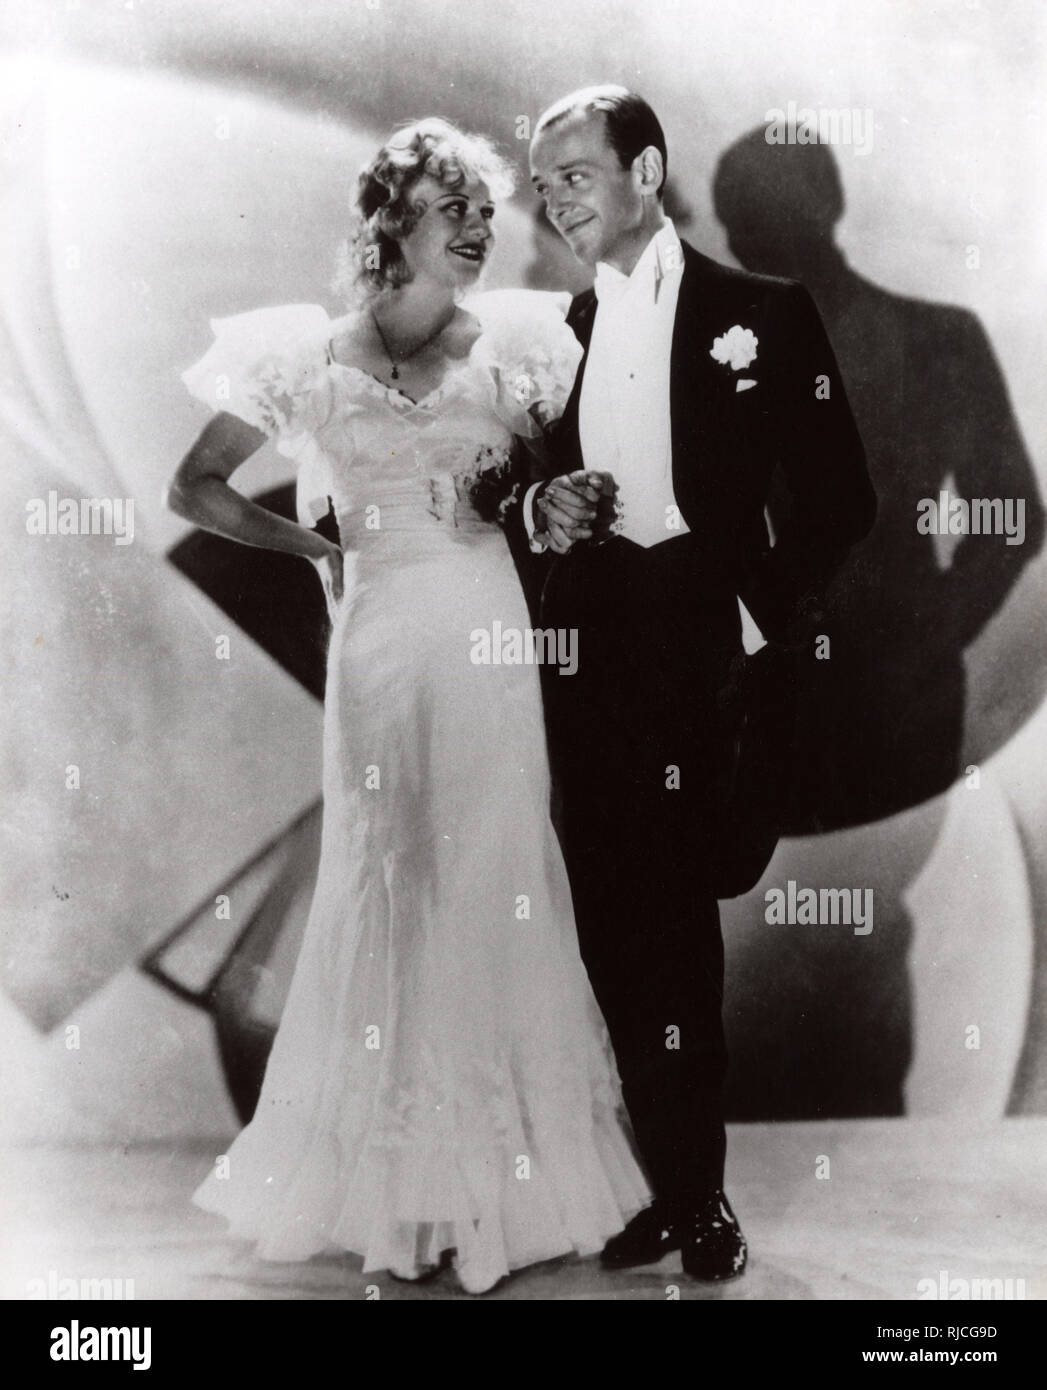 Cinema and Dance legends Fred Astaire (1899-1987) and Ginger Rogers (1911-1995) in 'Flying Down to Rio' (1933) Stock Photo